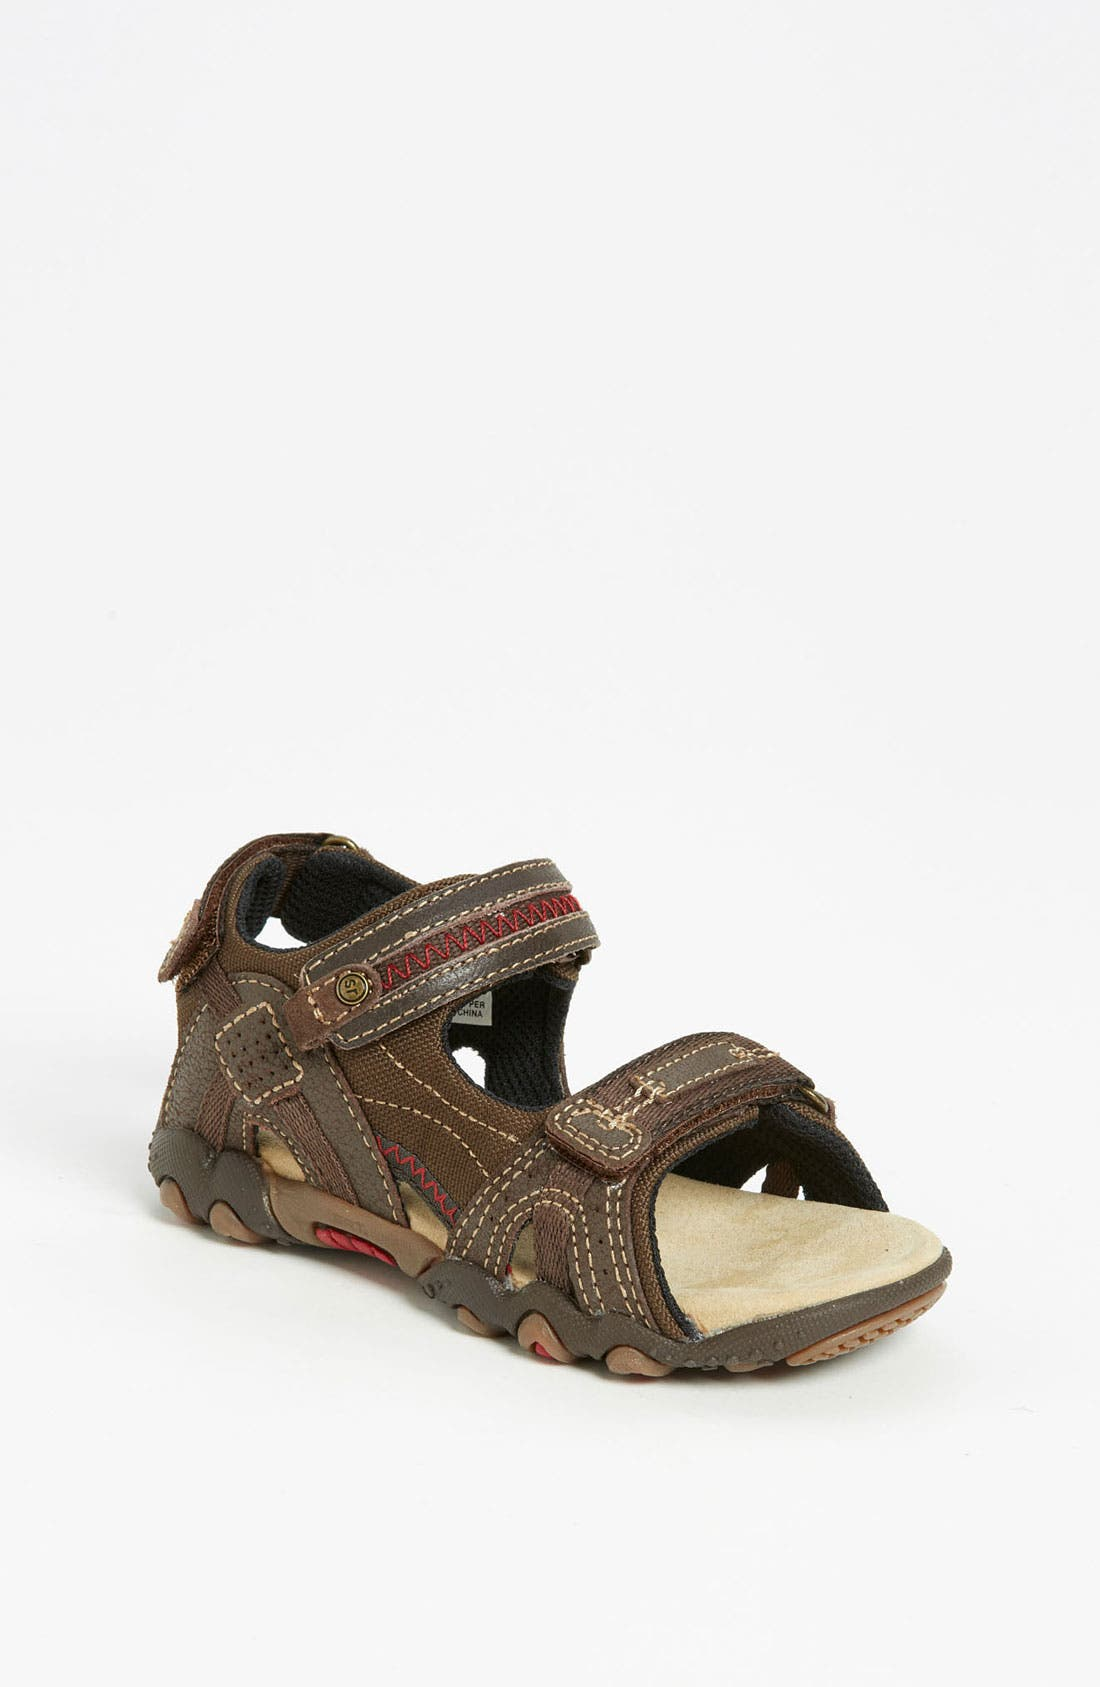 Main Image - Stride Rite 'Scooter' Sandal (Toddler & Little Kid)